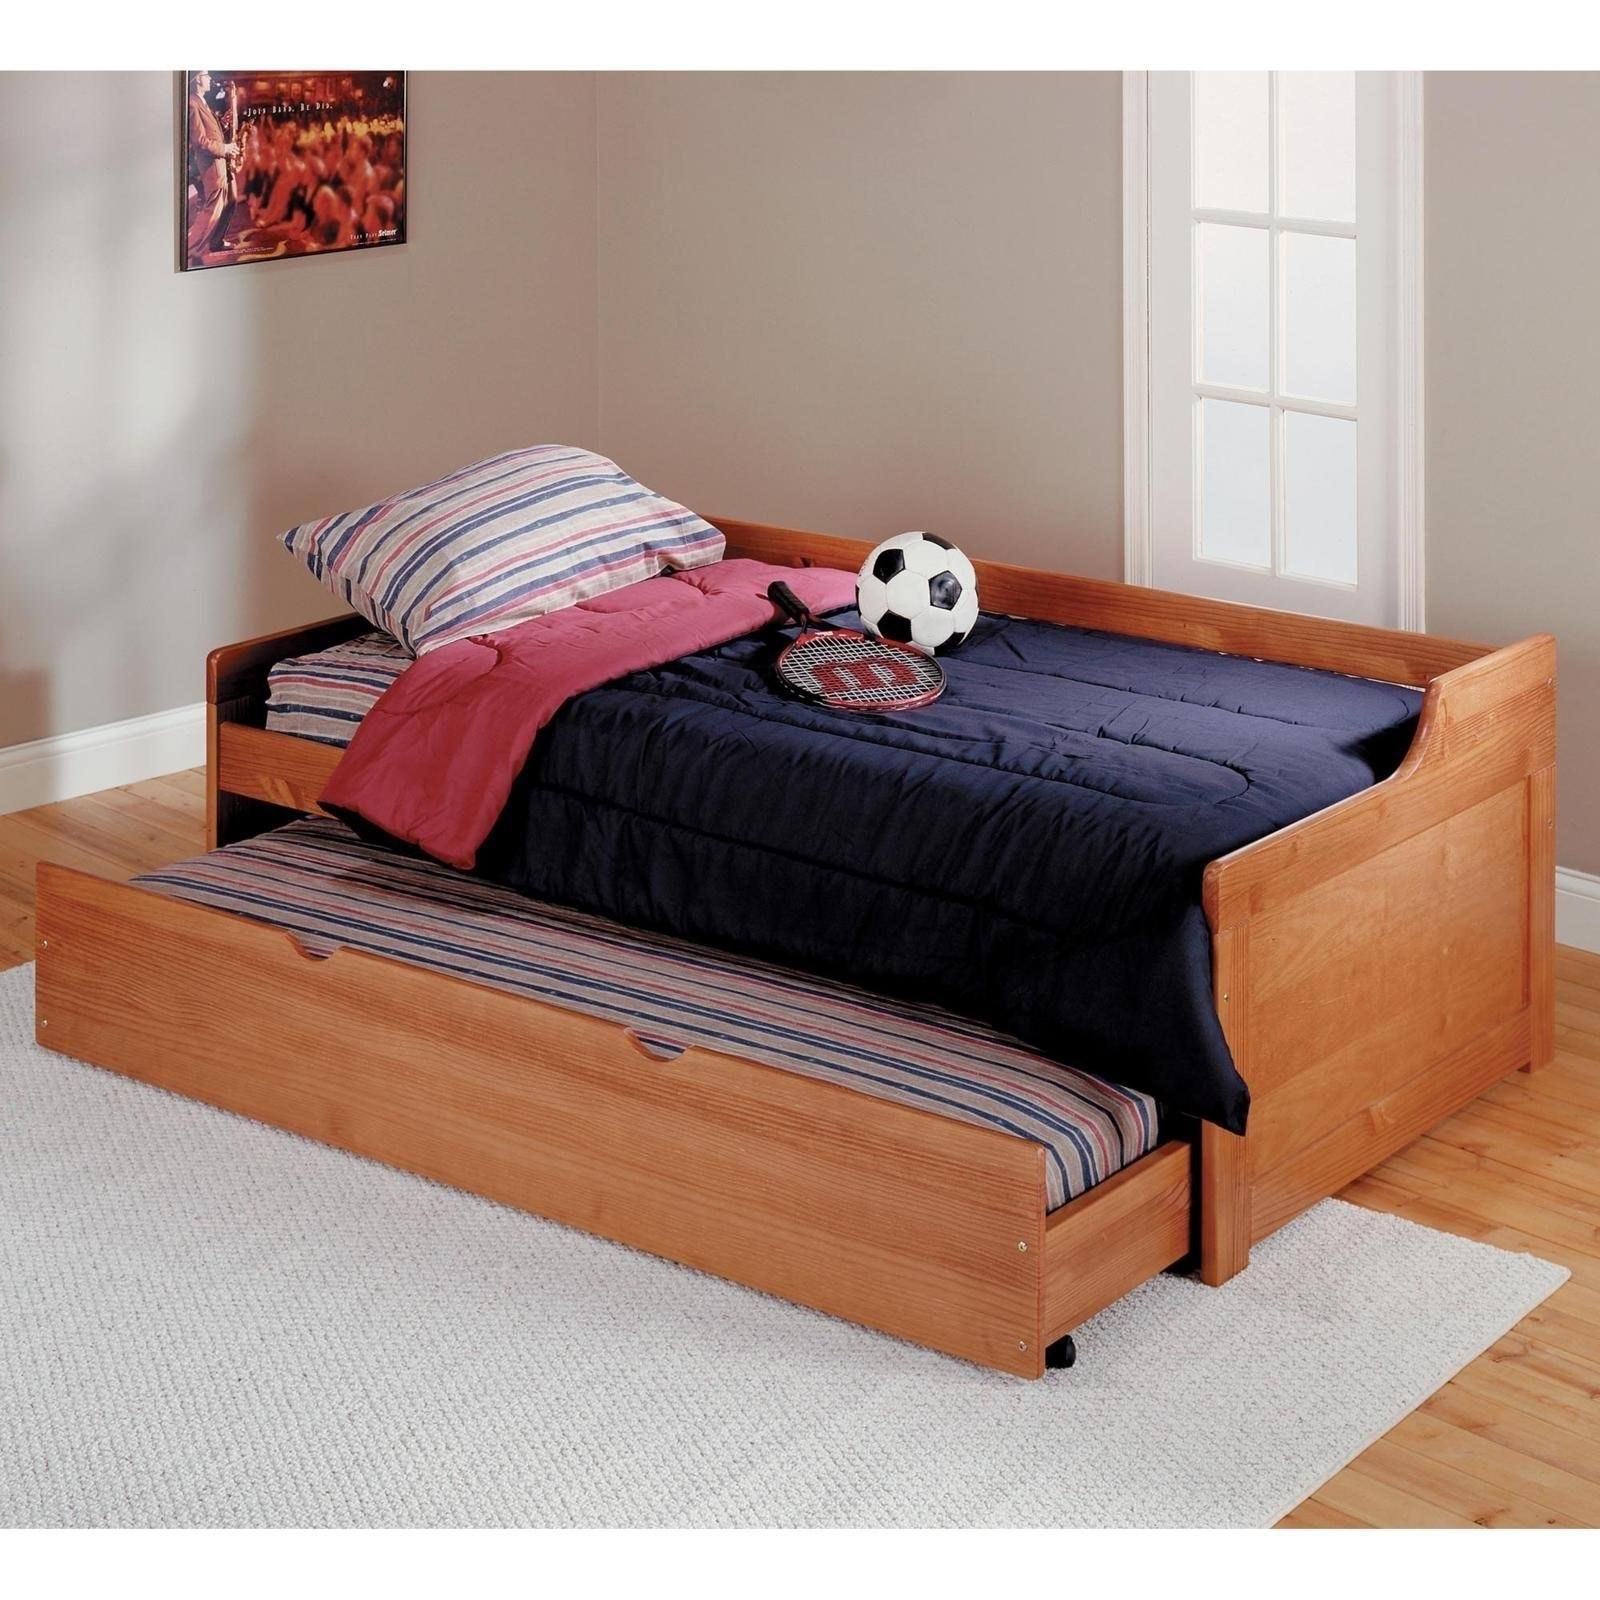 Beds Daybeds And Trundle Beds Pics With Mesmerizing Trundle Daybed Intended For Sofa Day Beds (Image 4 of 20)